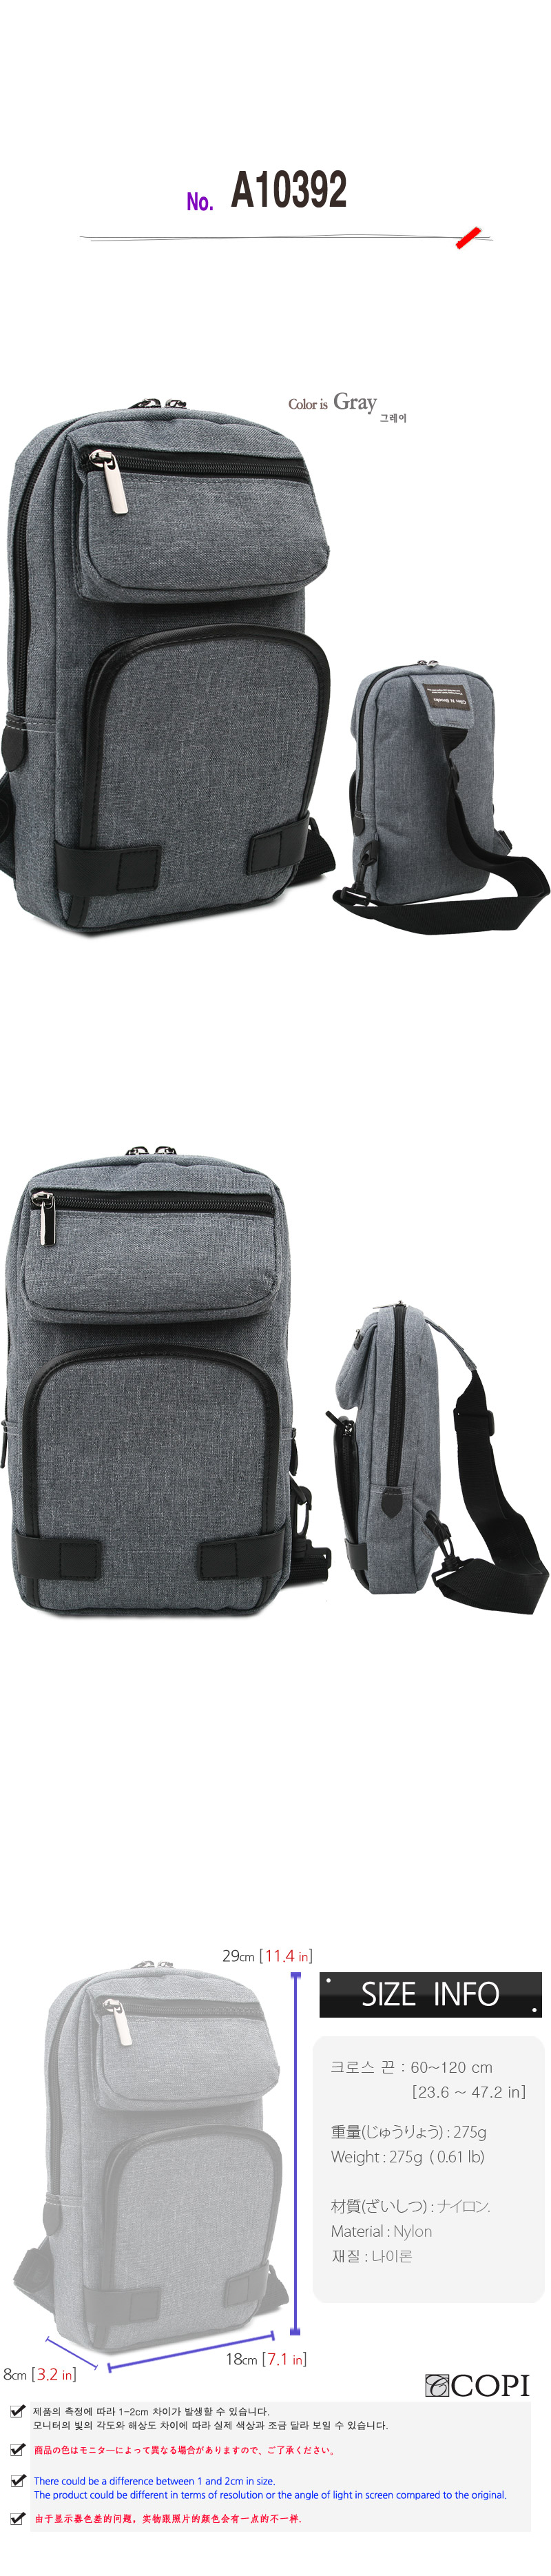 backpack no.A10392view